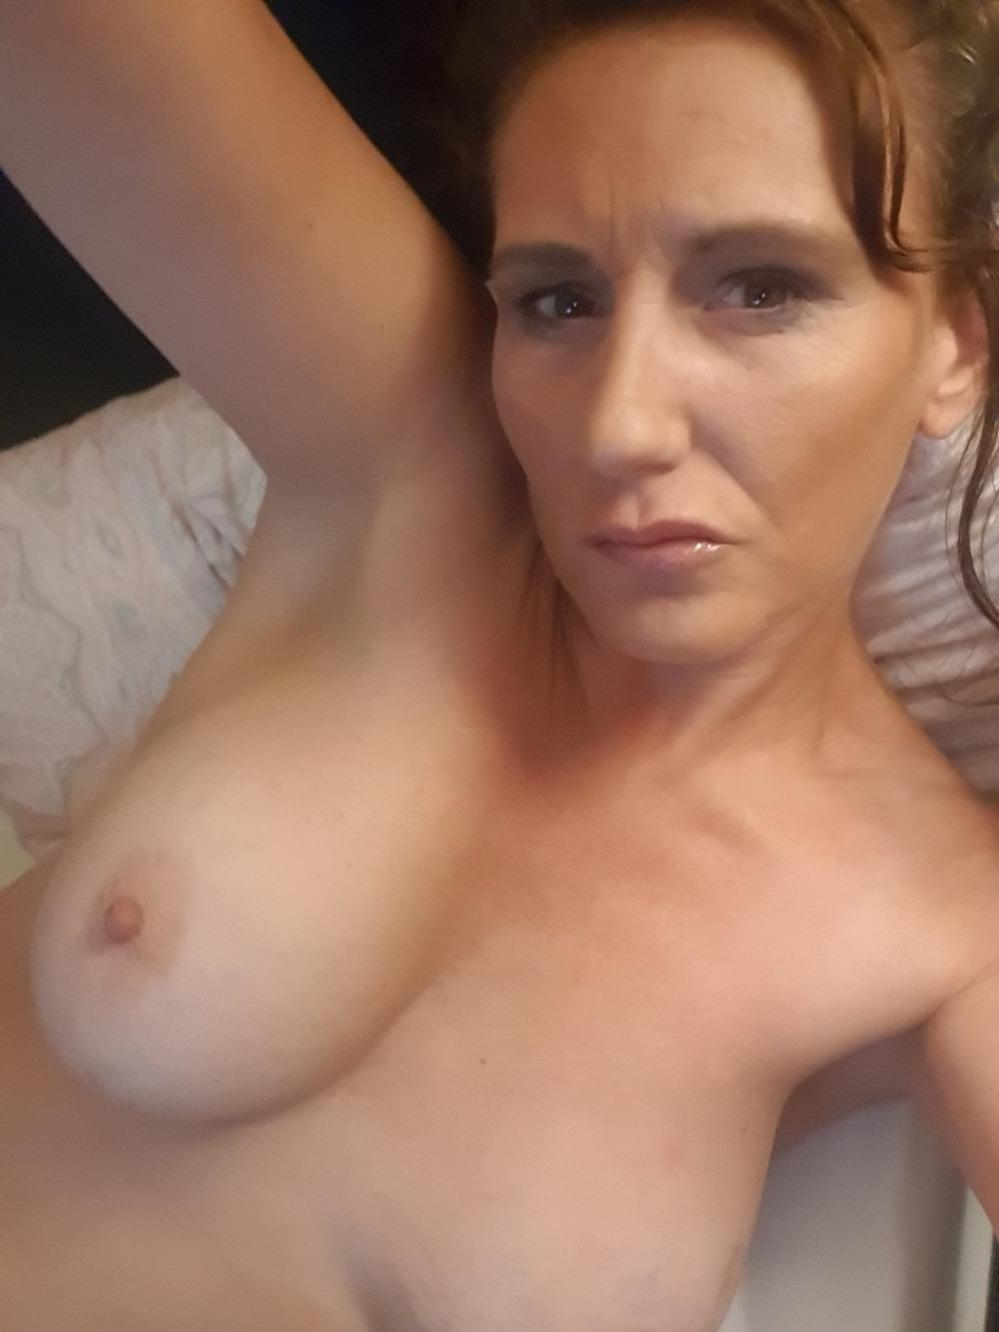 Sexy UK MILF shows her hot boobs in sexy selfie picture. British MILF baring natural big tits